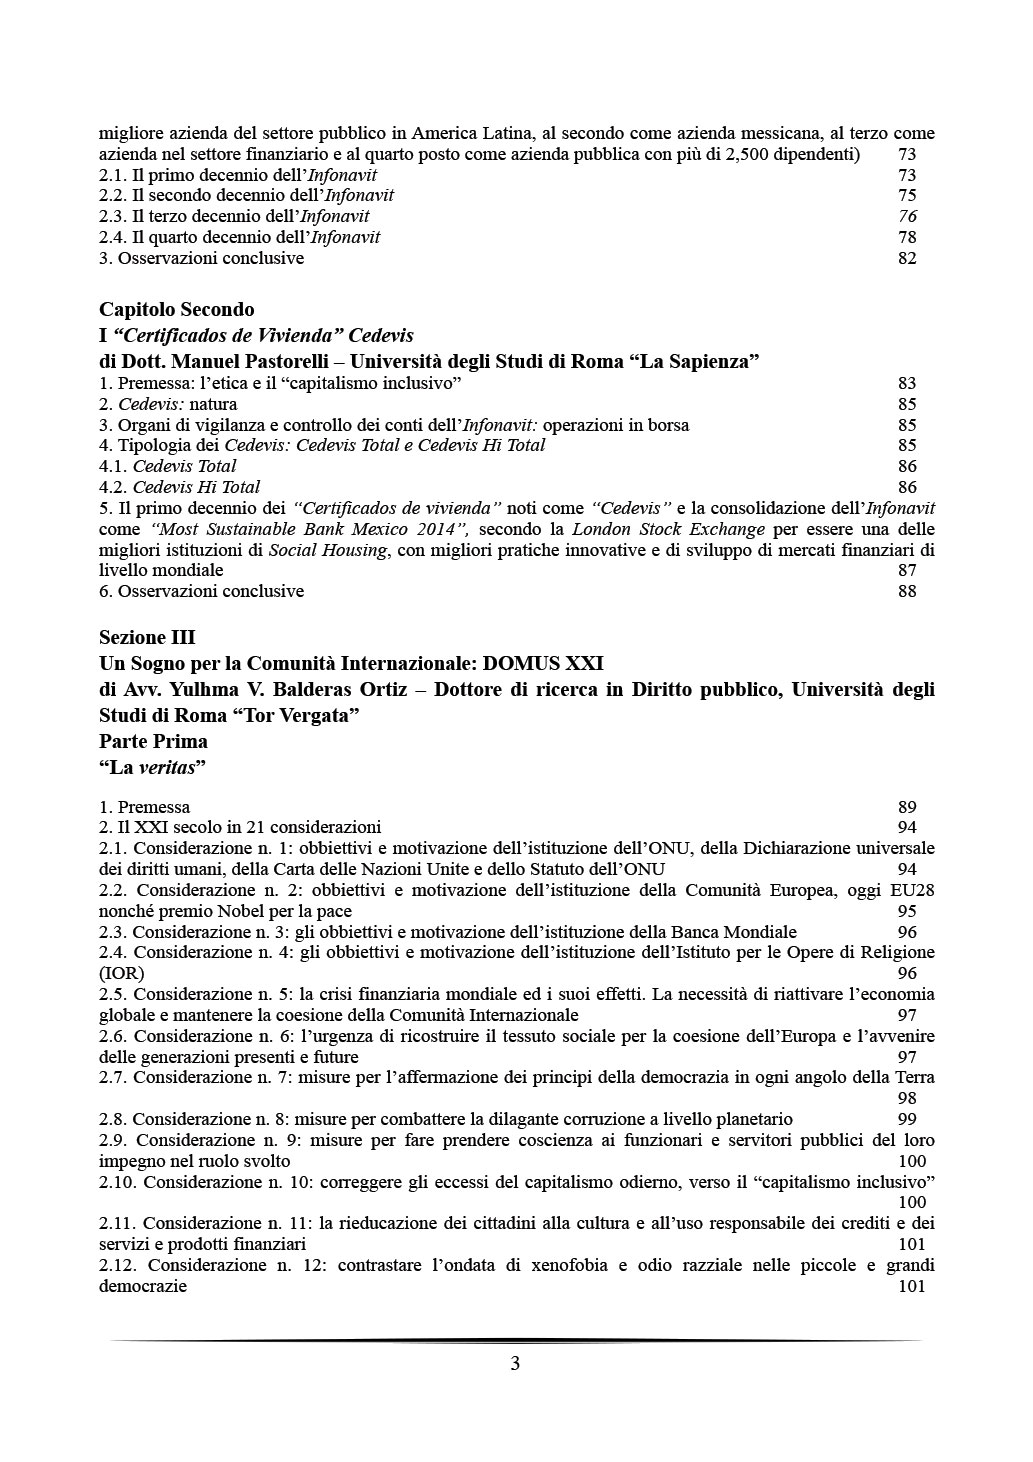 VERSION--ITALIANO-DOMUS-XXI-(DIVISA-IN-PARTI)-23-GENANIO-2016-3